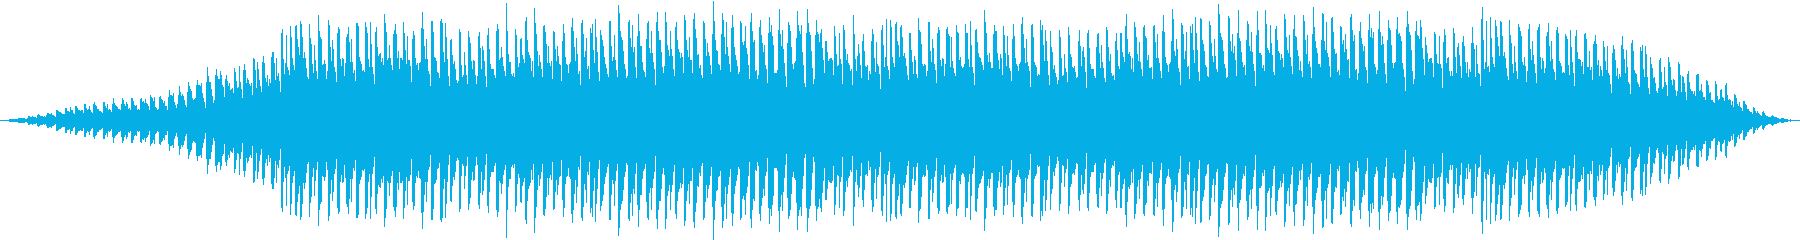 Marching band with a pleasant candy's reproduced waveform